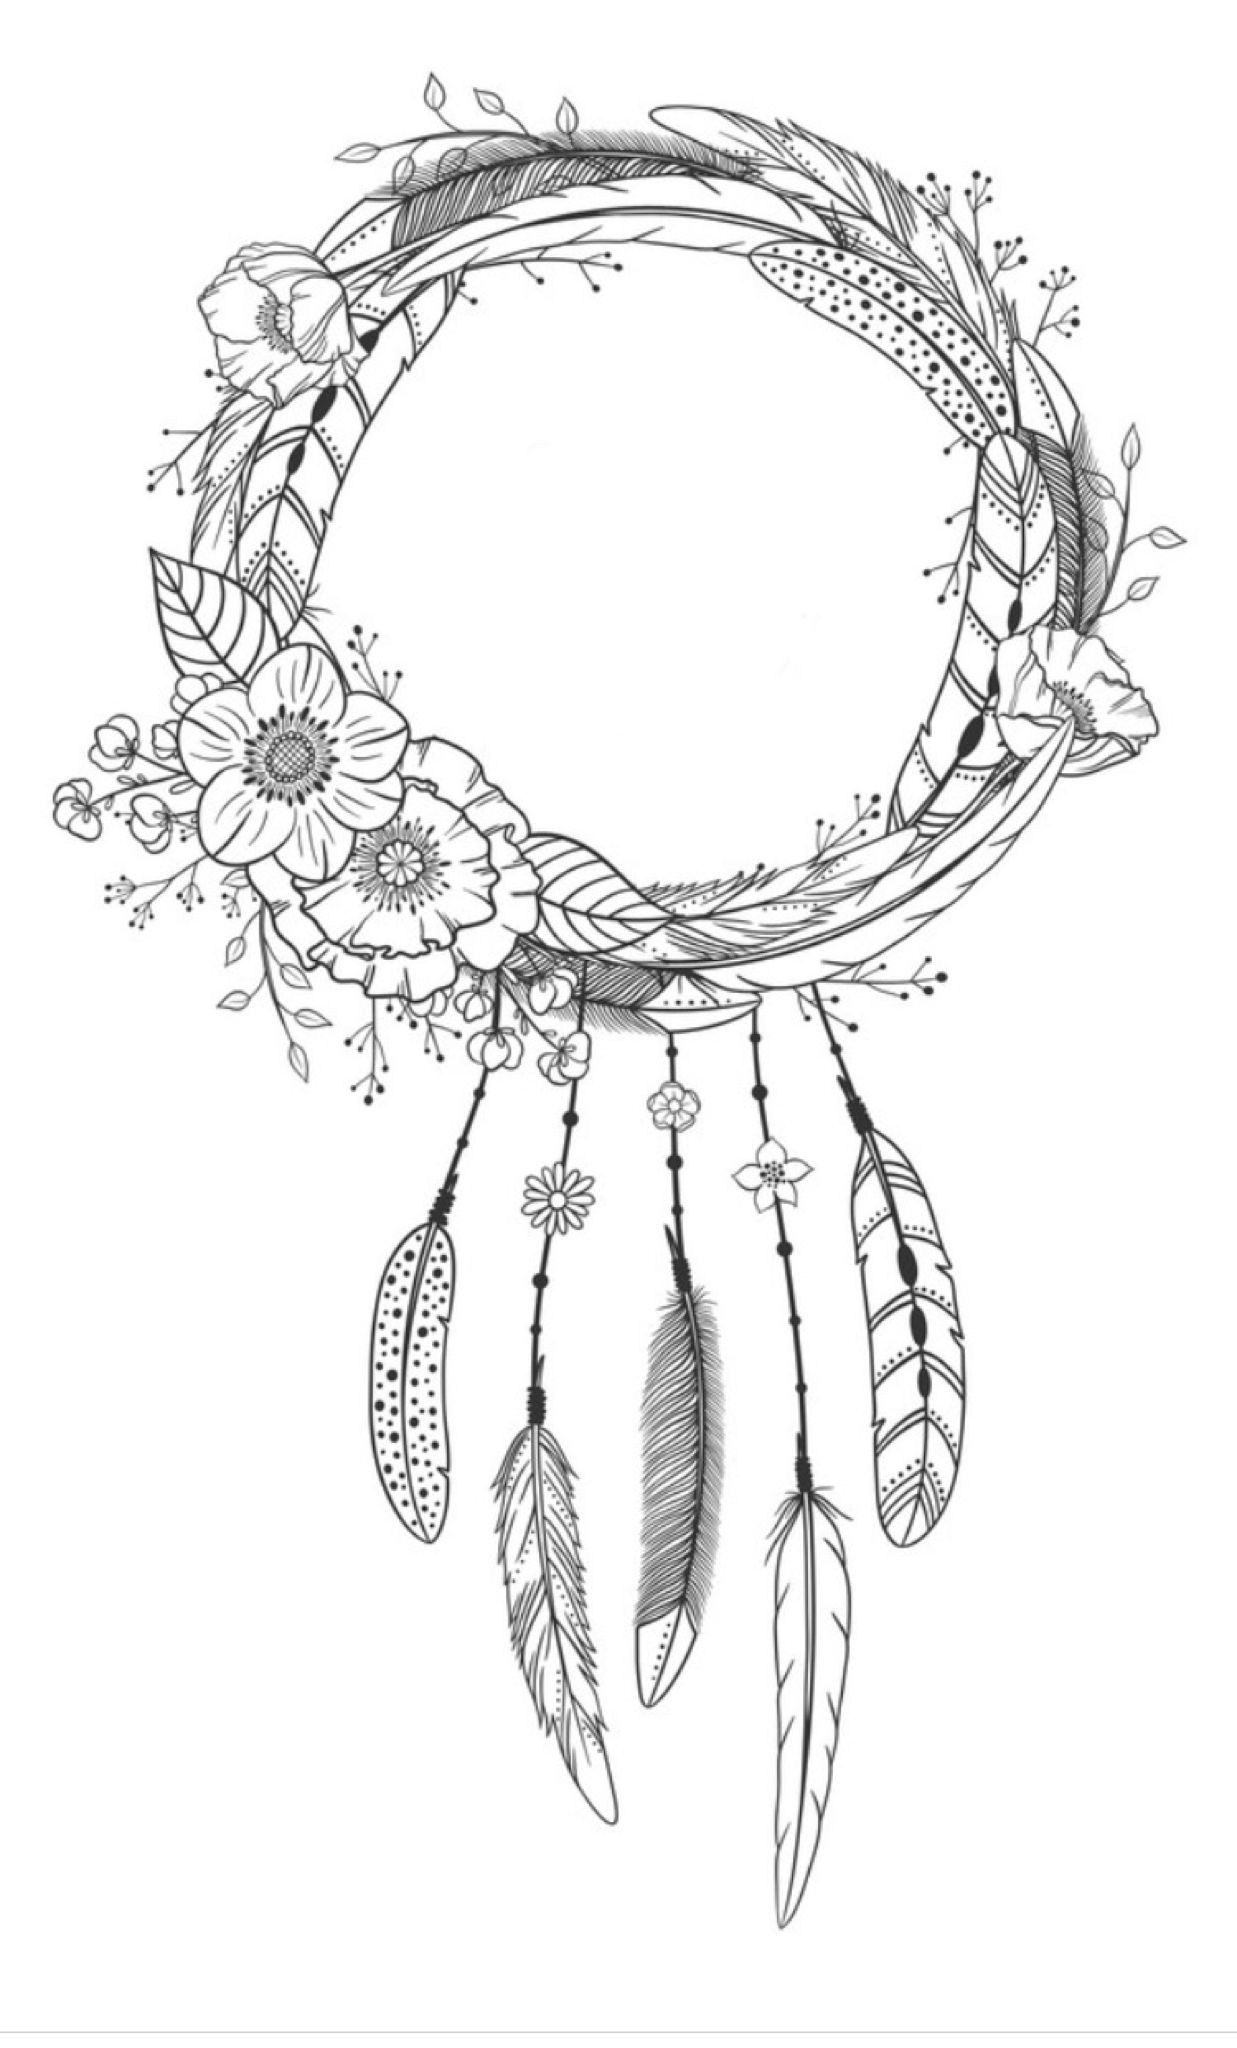 Dreamcatcher coloring page | Coloring pages for adults ...